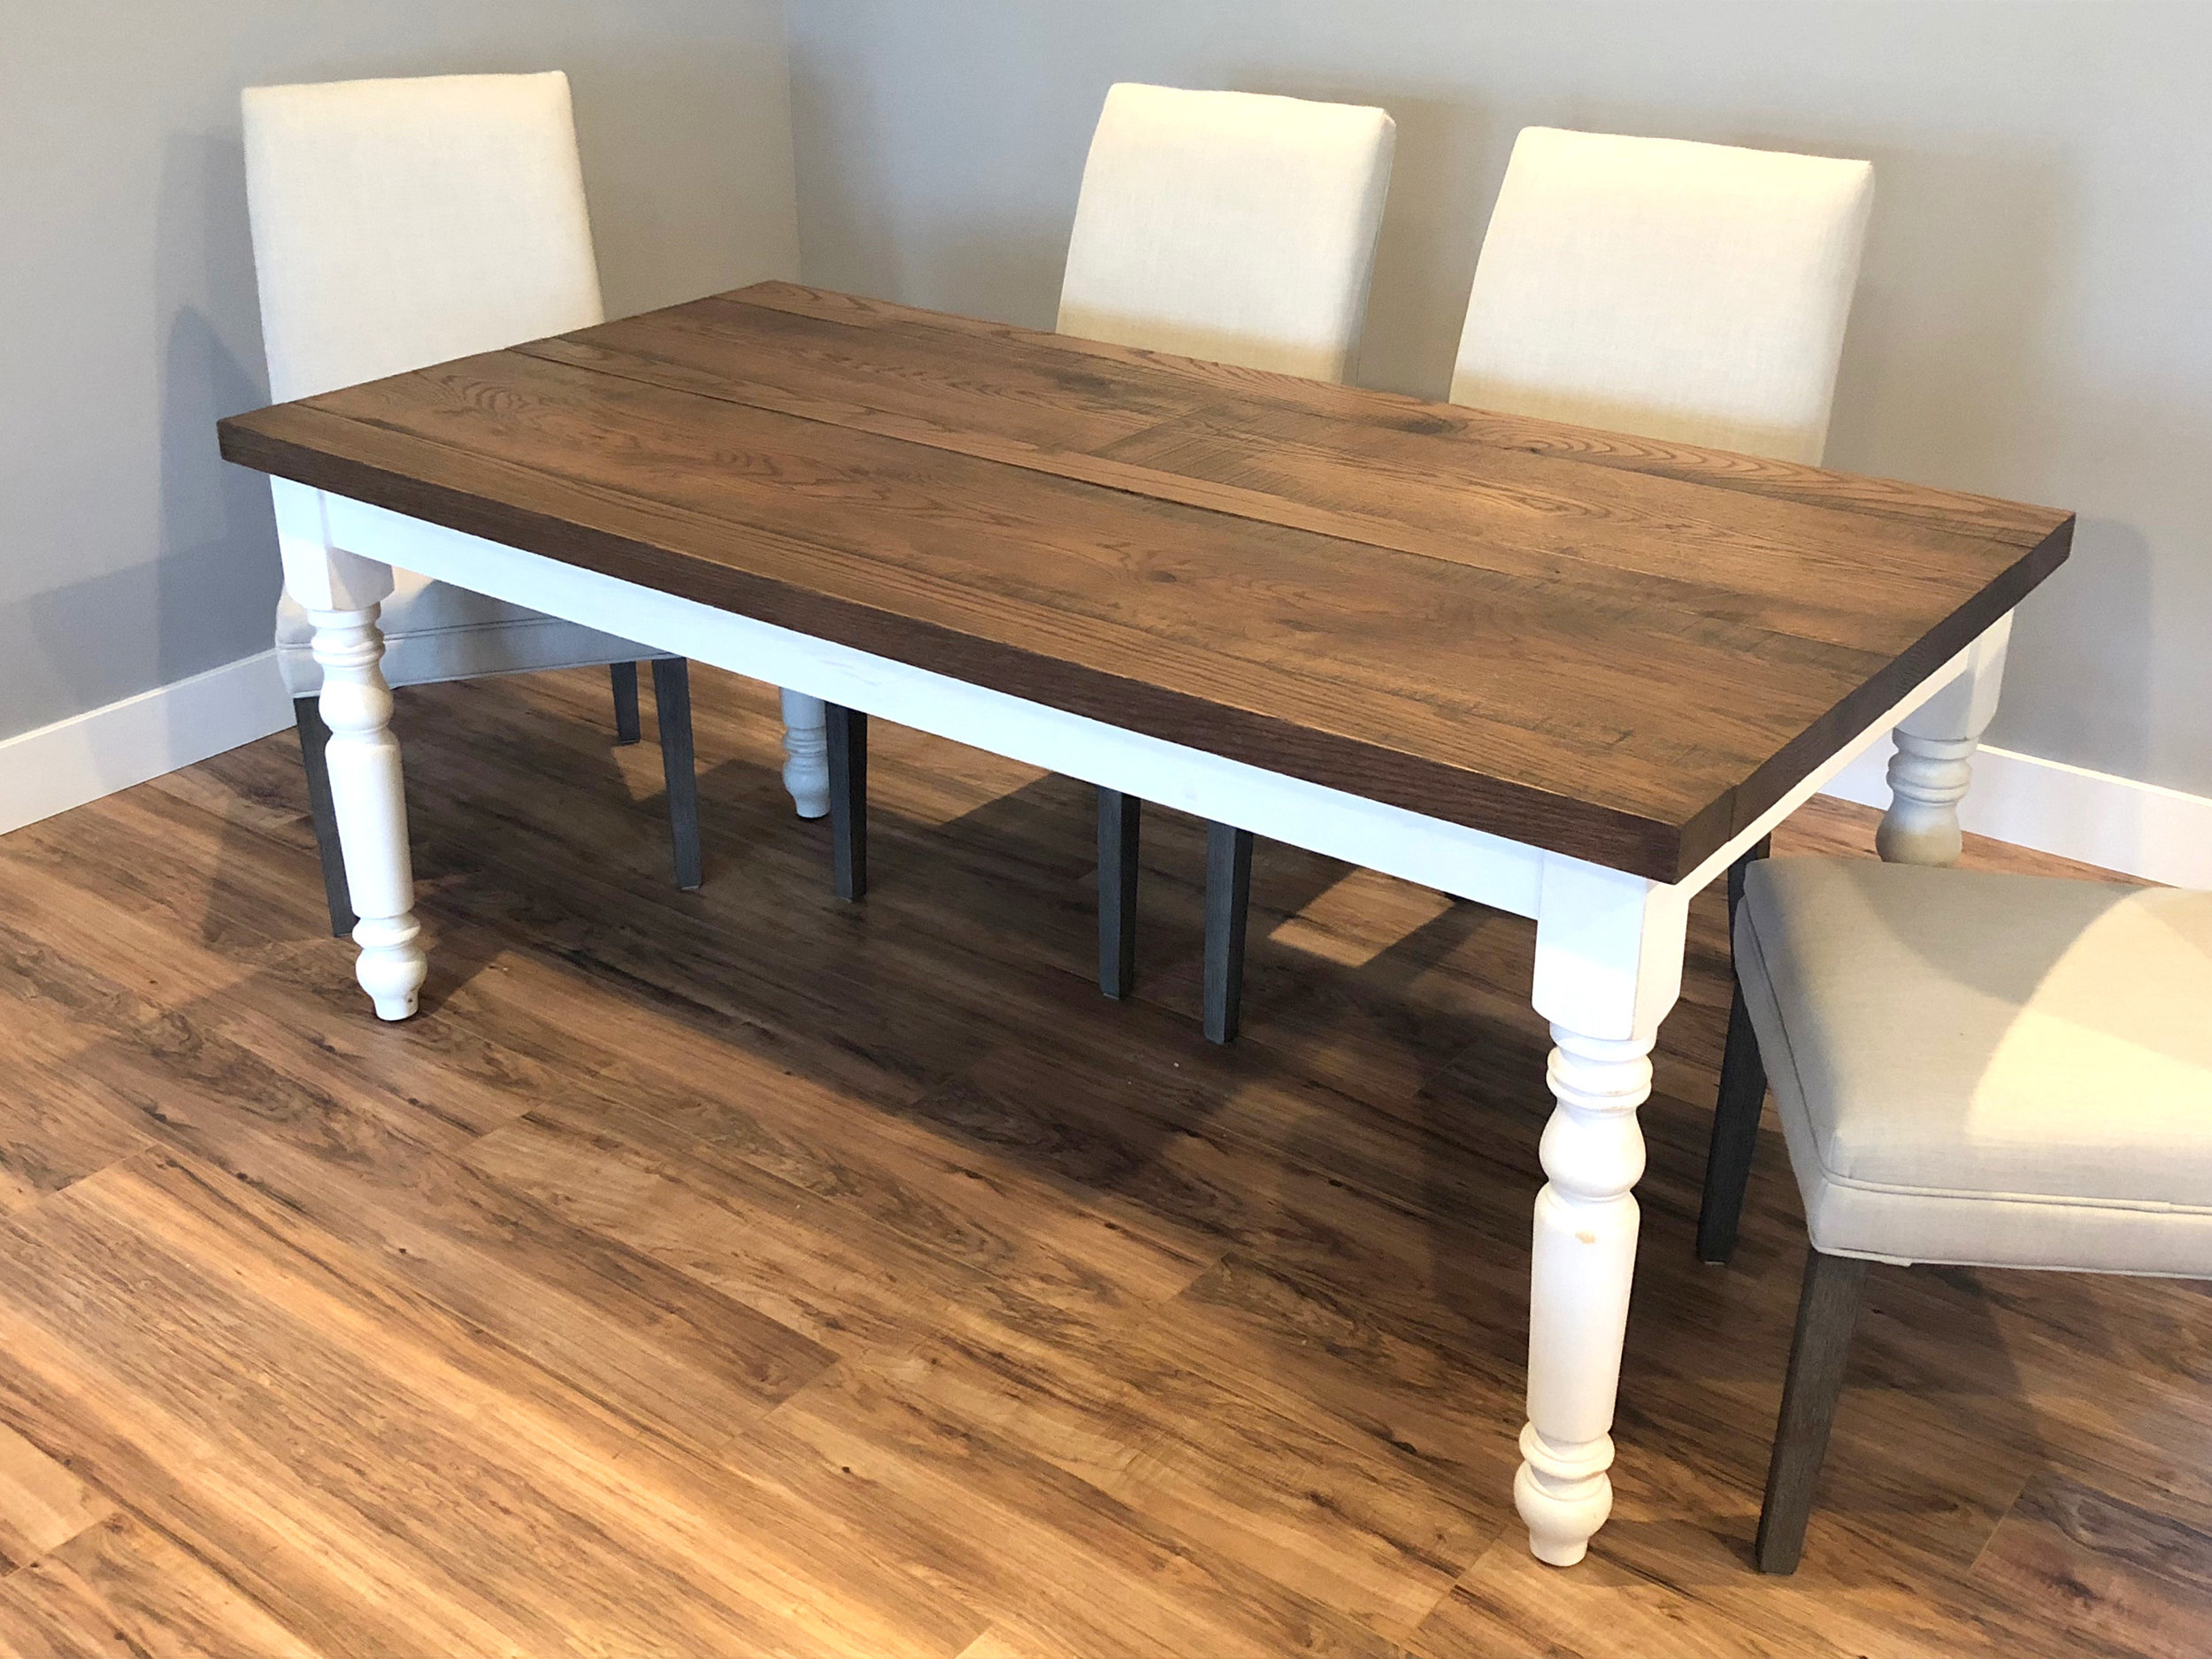 Farmhouse Dining Table.jpg